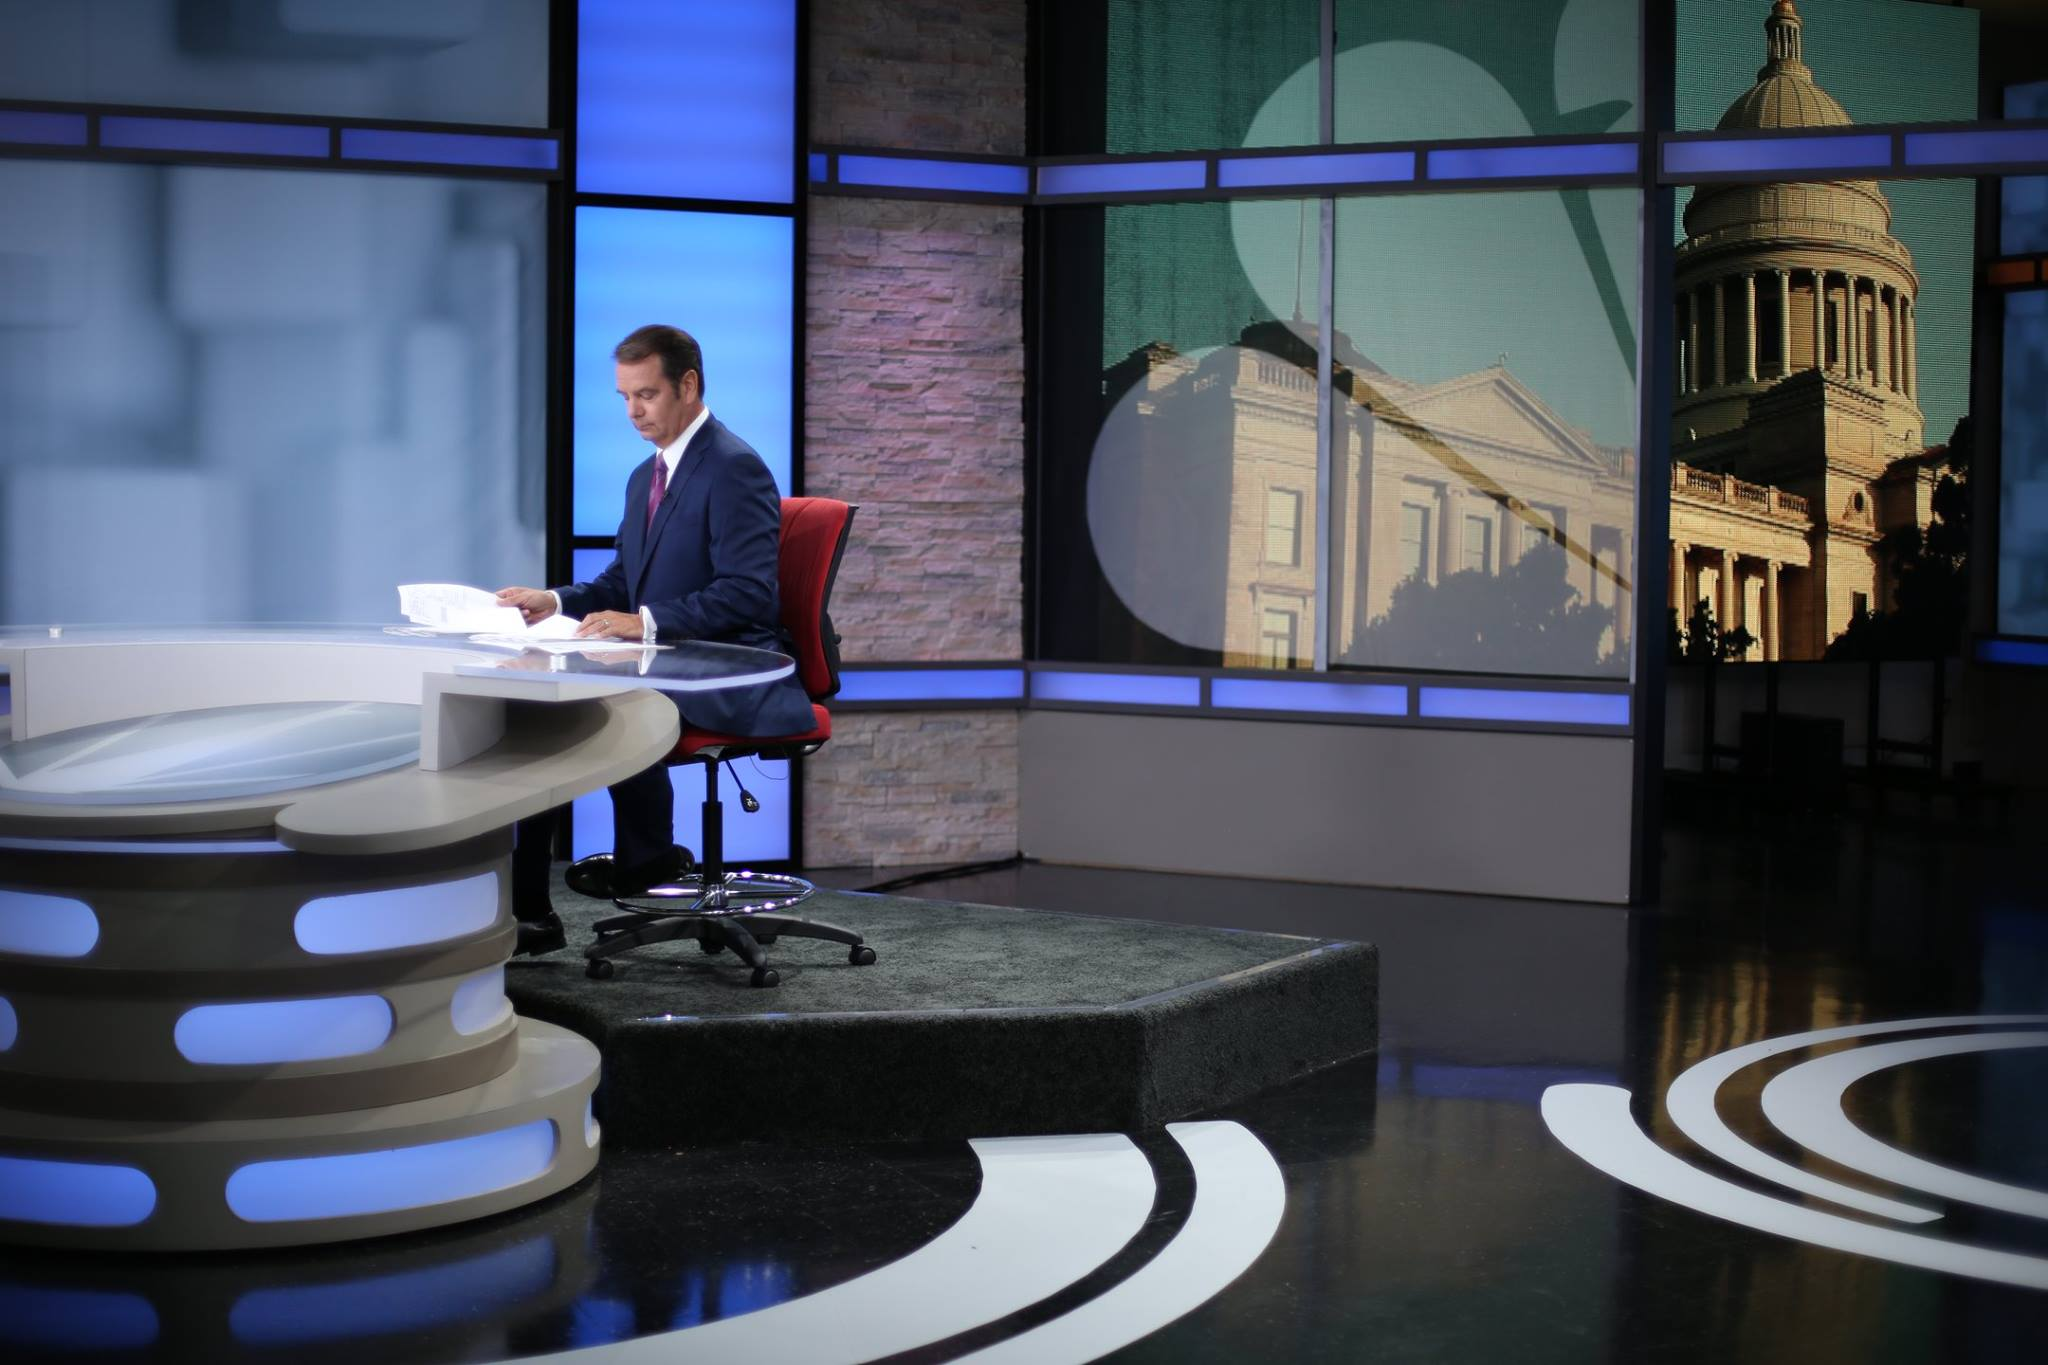 ncs_kark-4-news-tv-studio-arkansas_0003